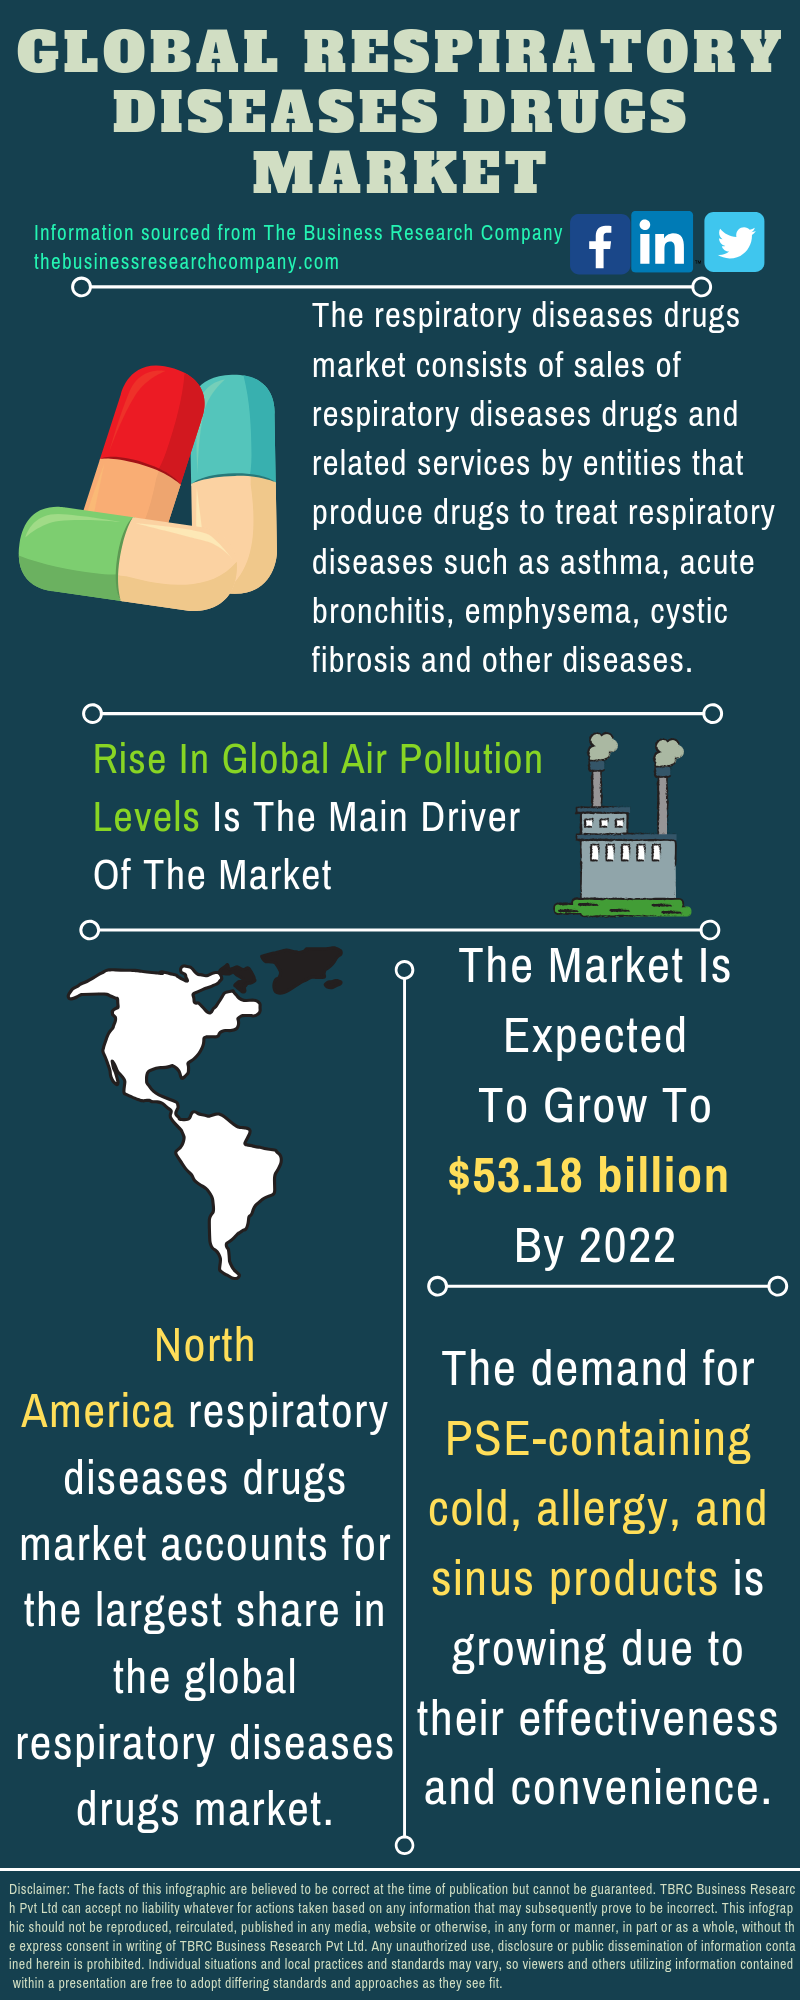 Respiratory Diseases Drugs Market